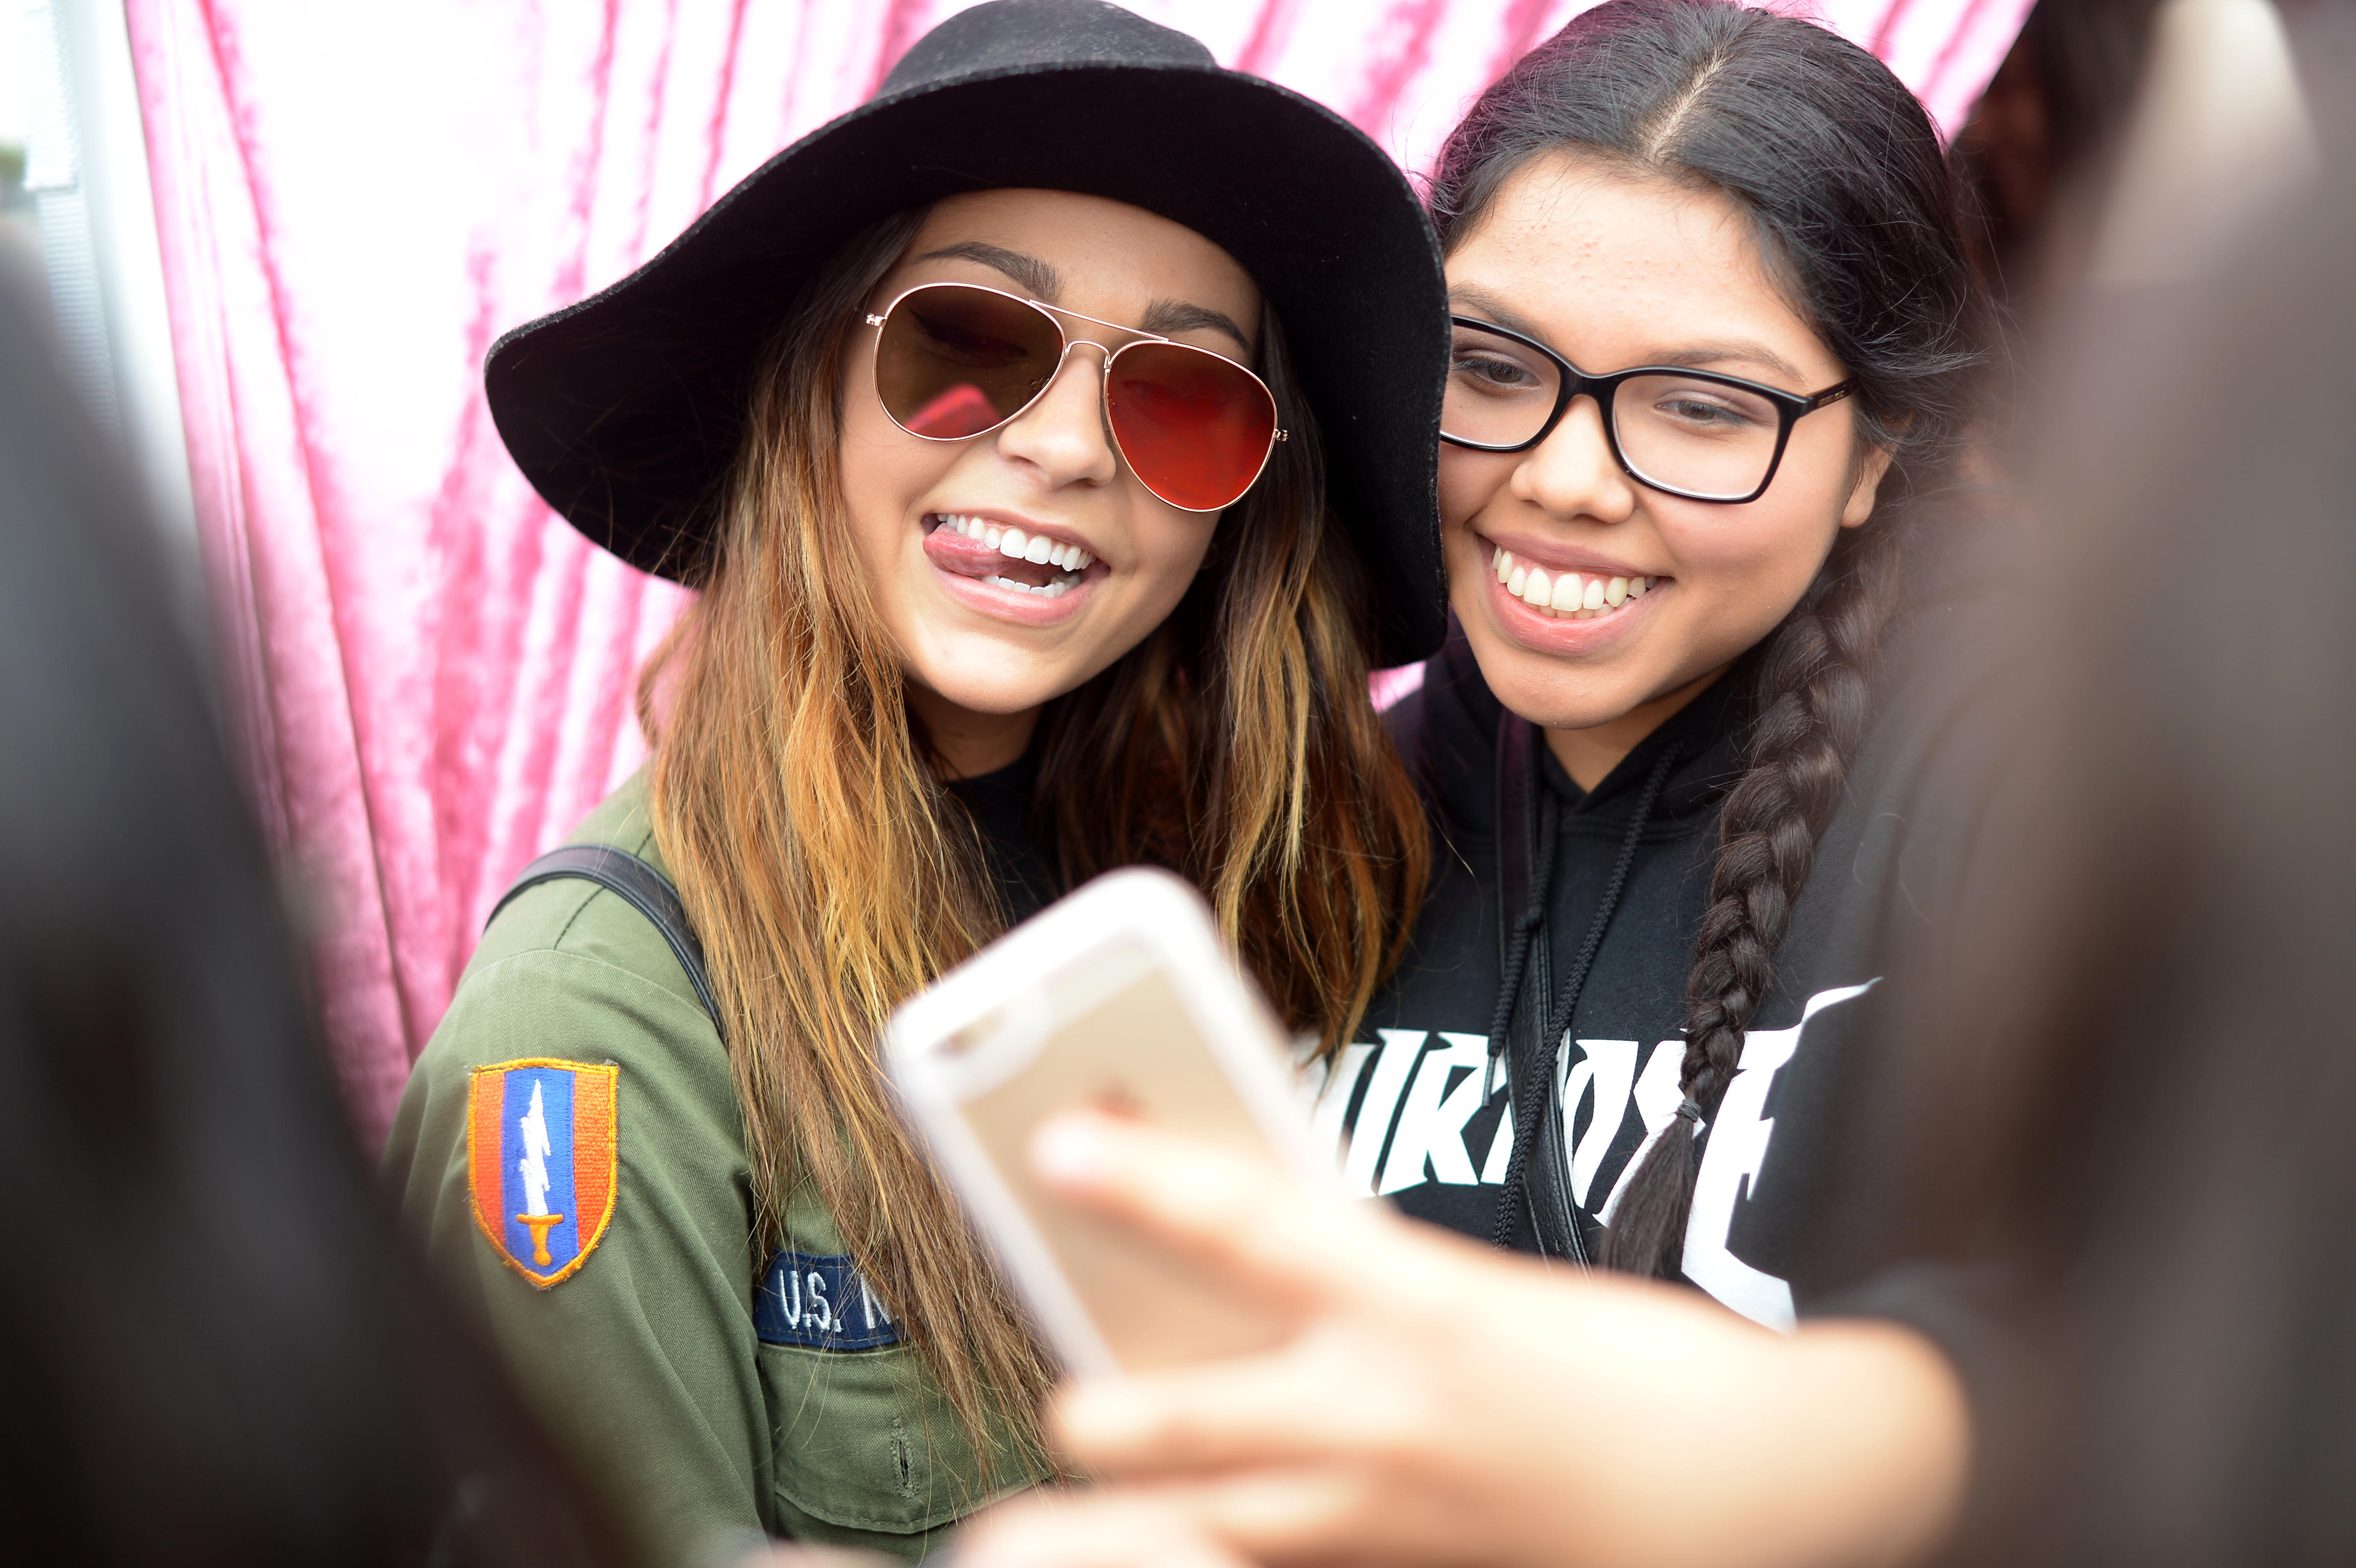 YouTuber Andrea Russett poses while a fan shoots a selfie